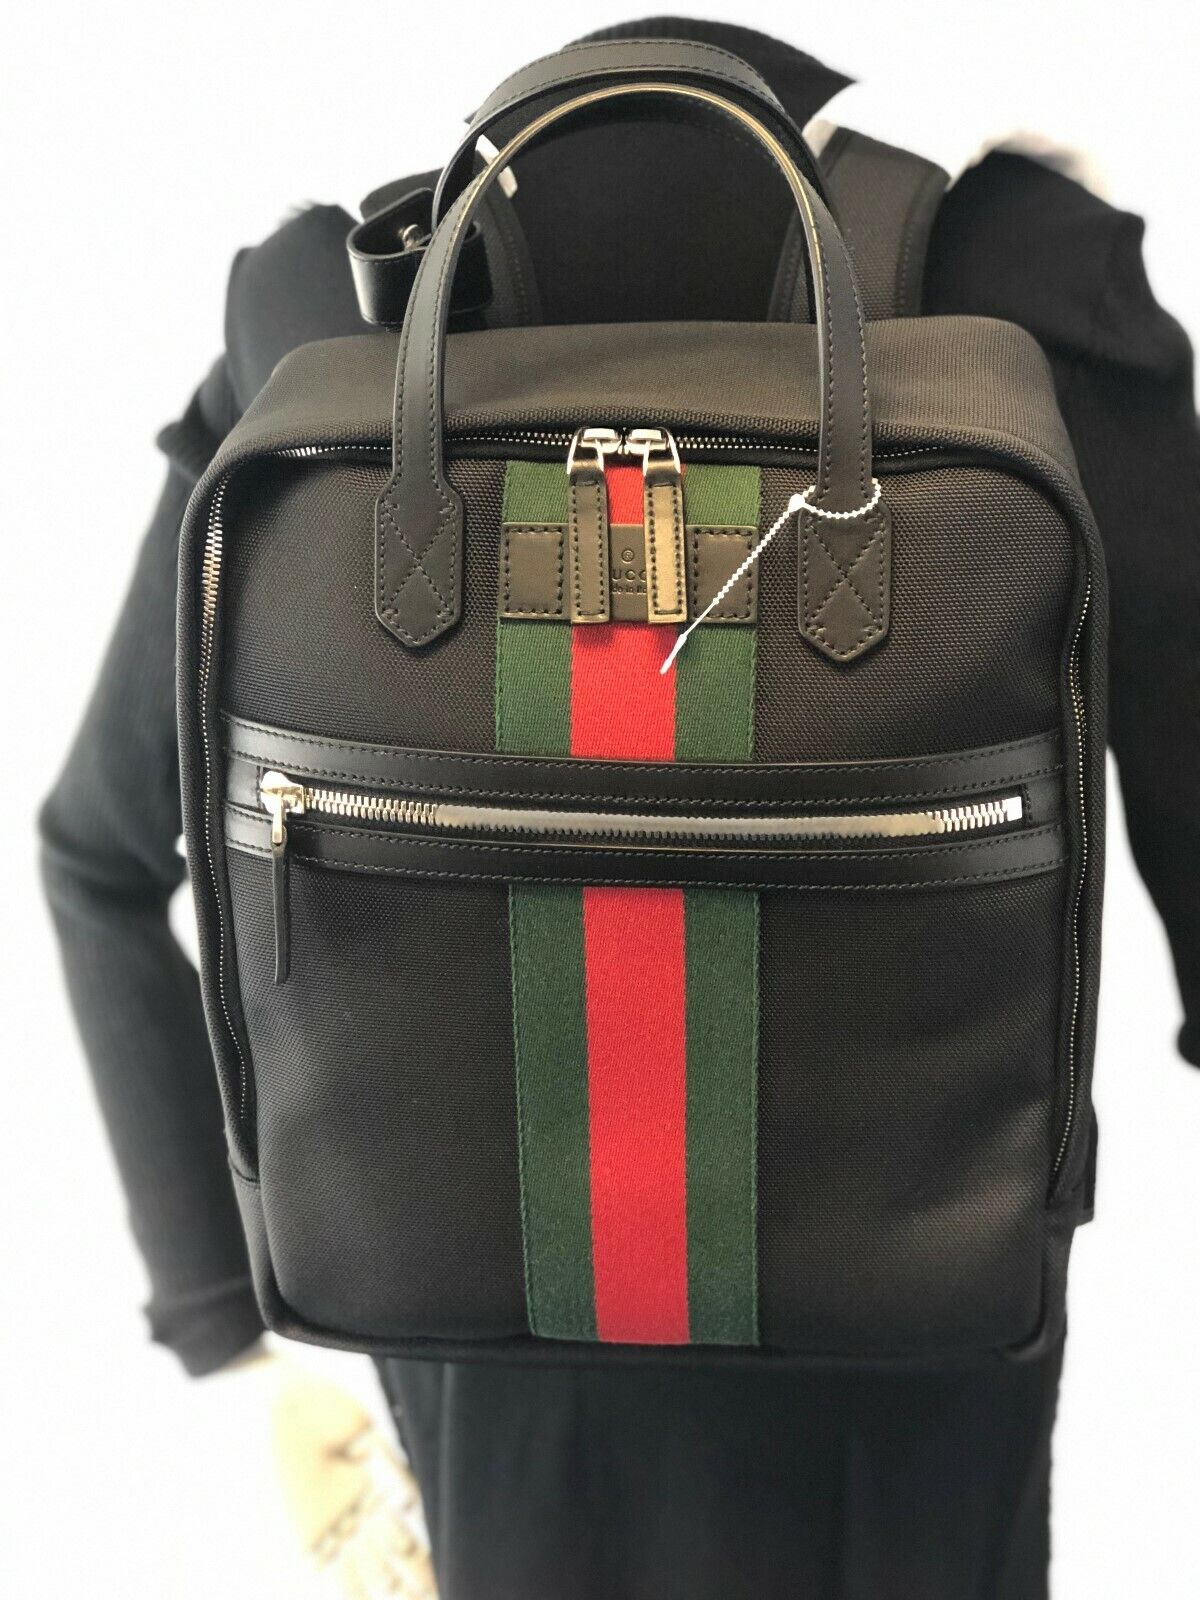 dc63611cdef Gucci Black Canvas With Green and Red Web Stripe Satchel Backpack 495558  for sale online